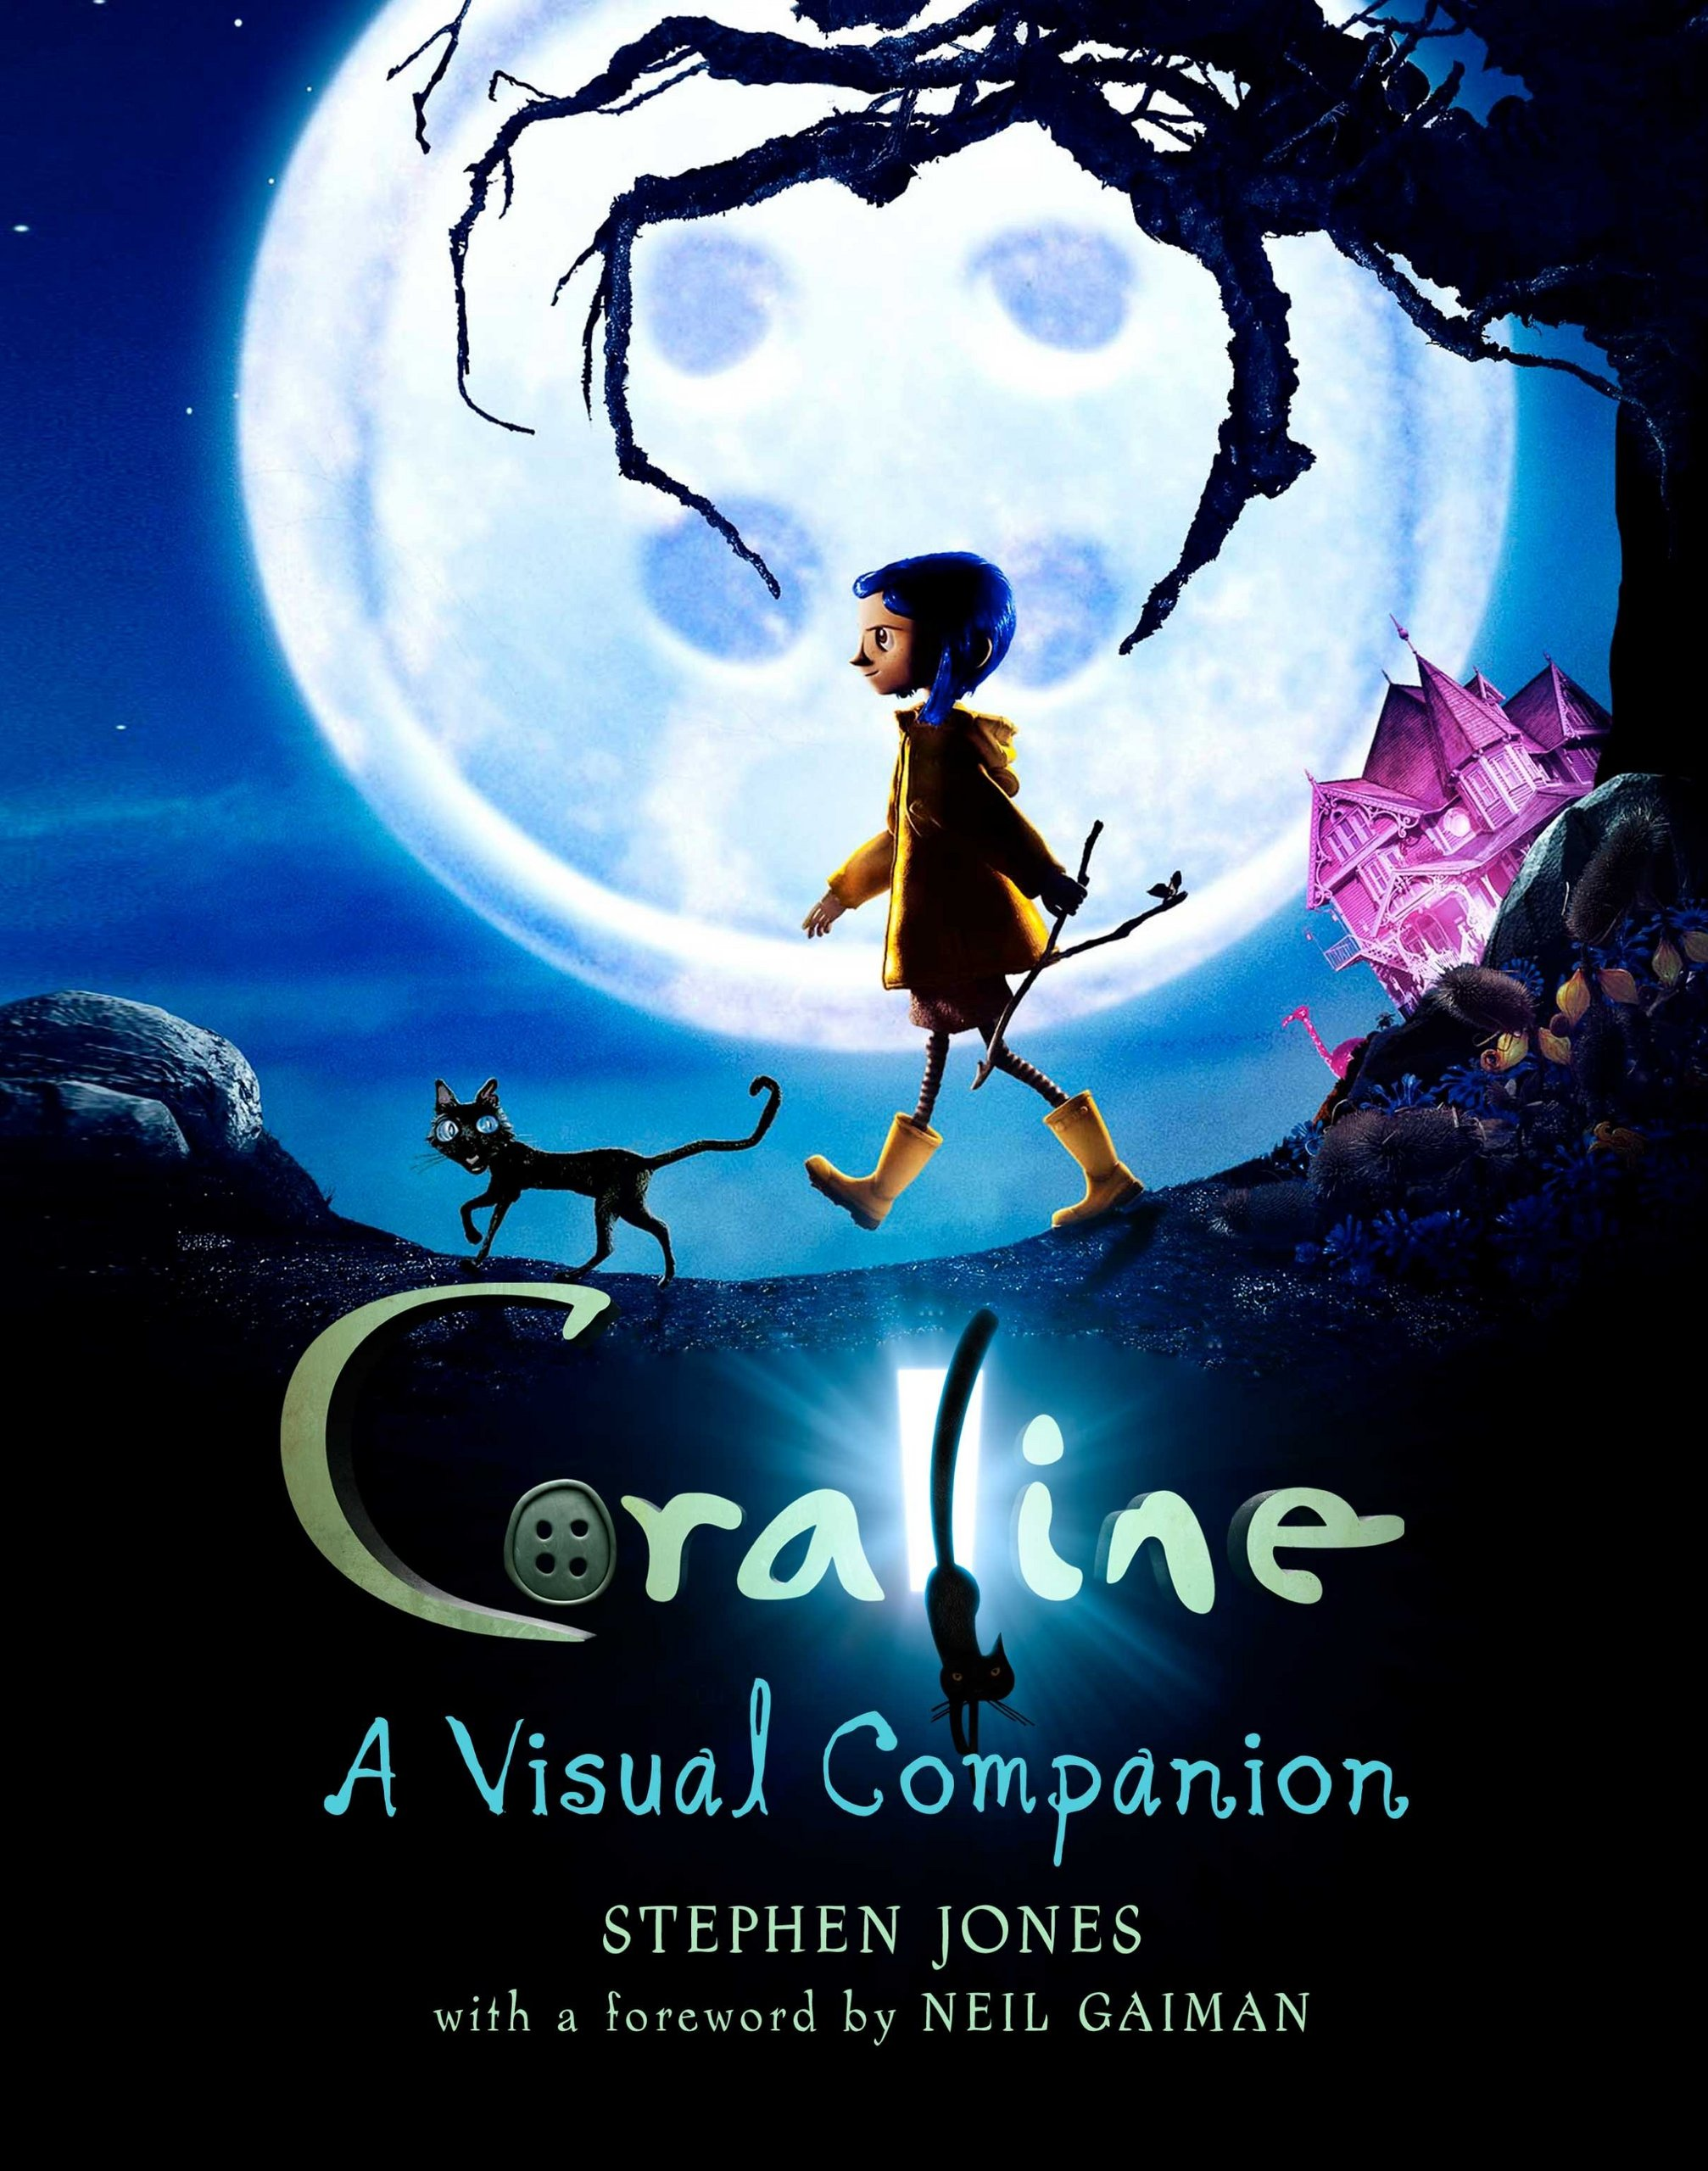 Coraline looking for the ghost eyes